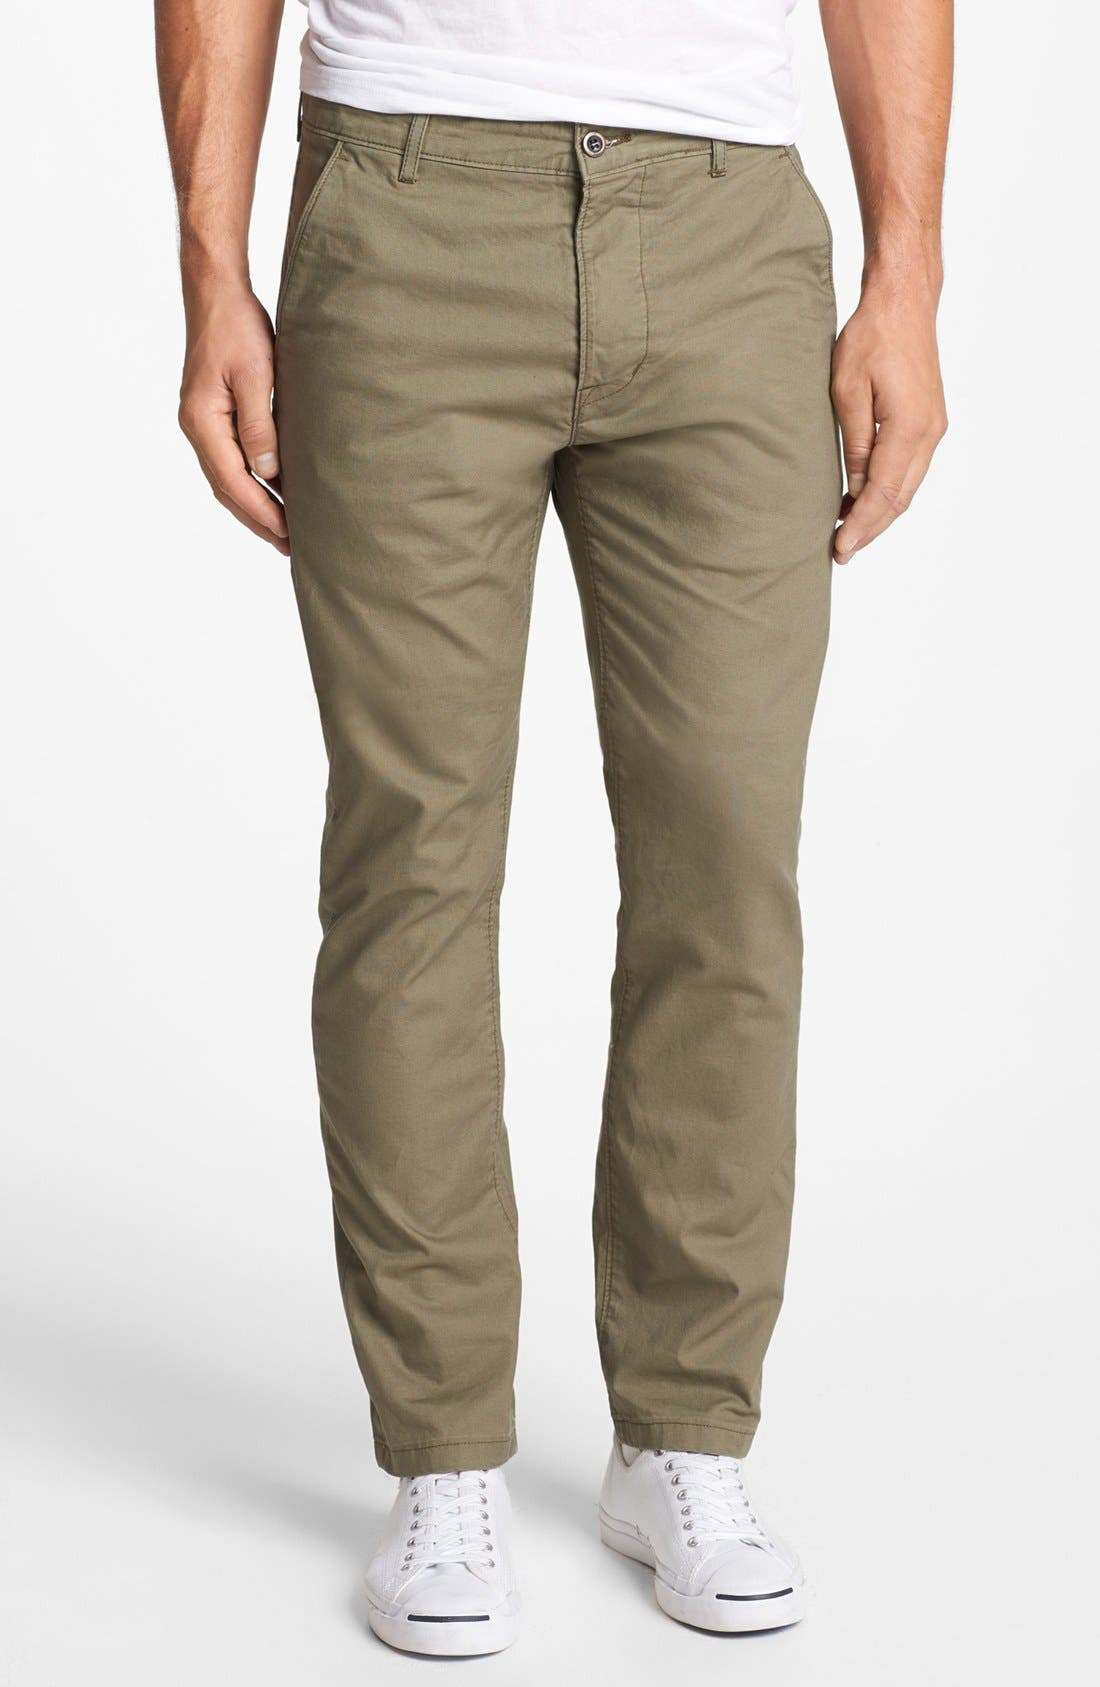 Main Image - Levi's® 'Better' Slim Straight Leg Chinos